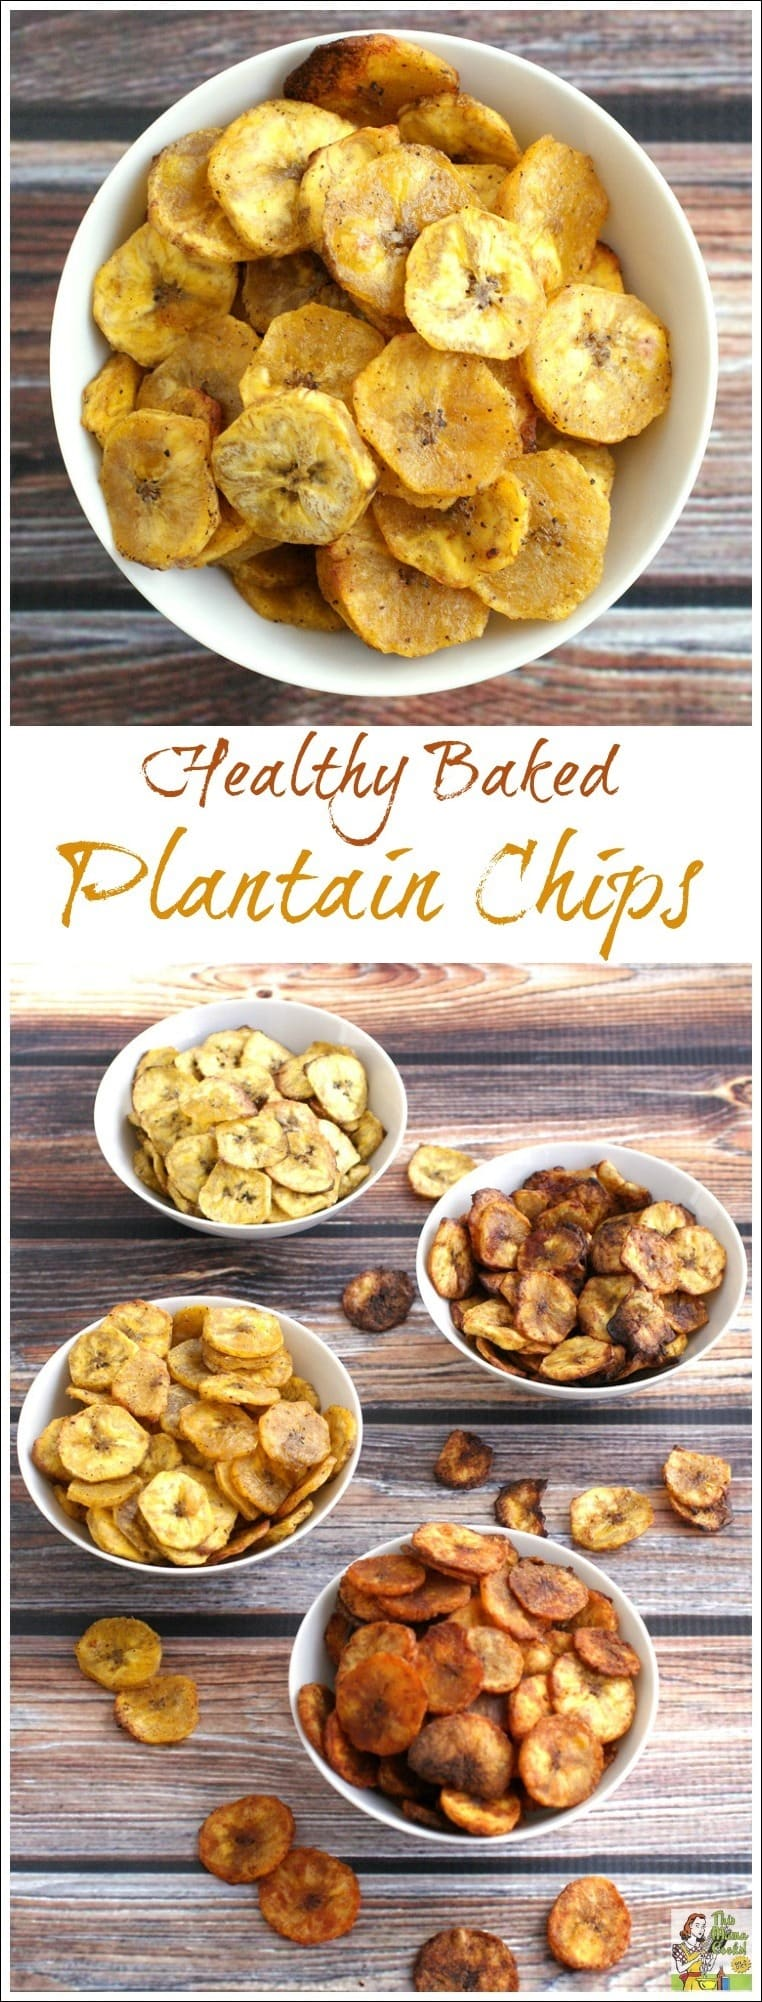 Healthy Baked Plantain Chips Four Ways | This Mama Cooks ...